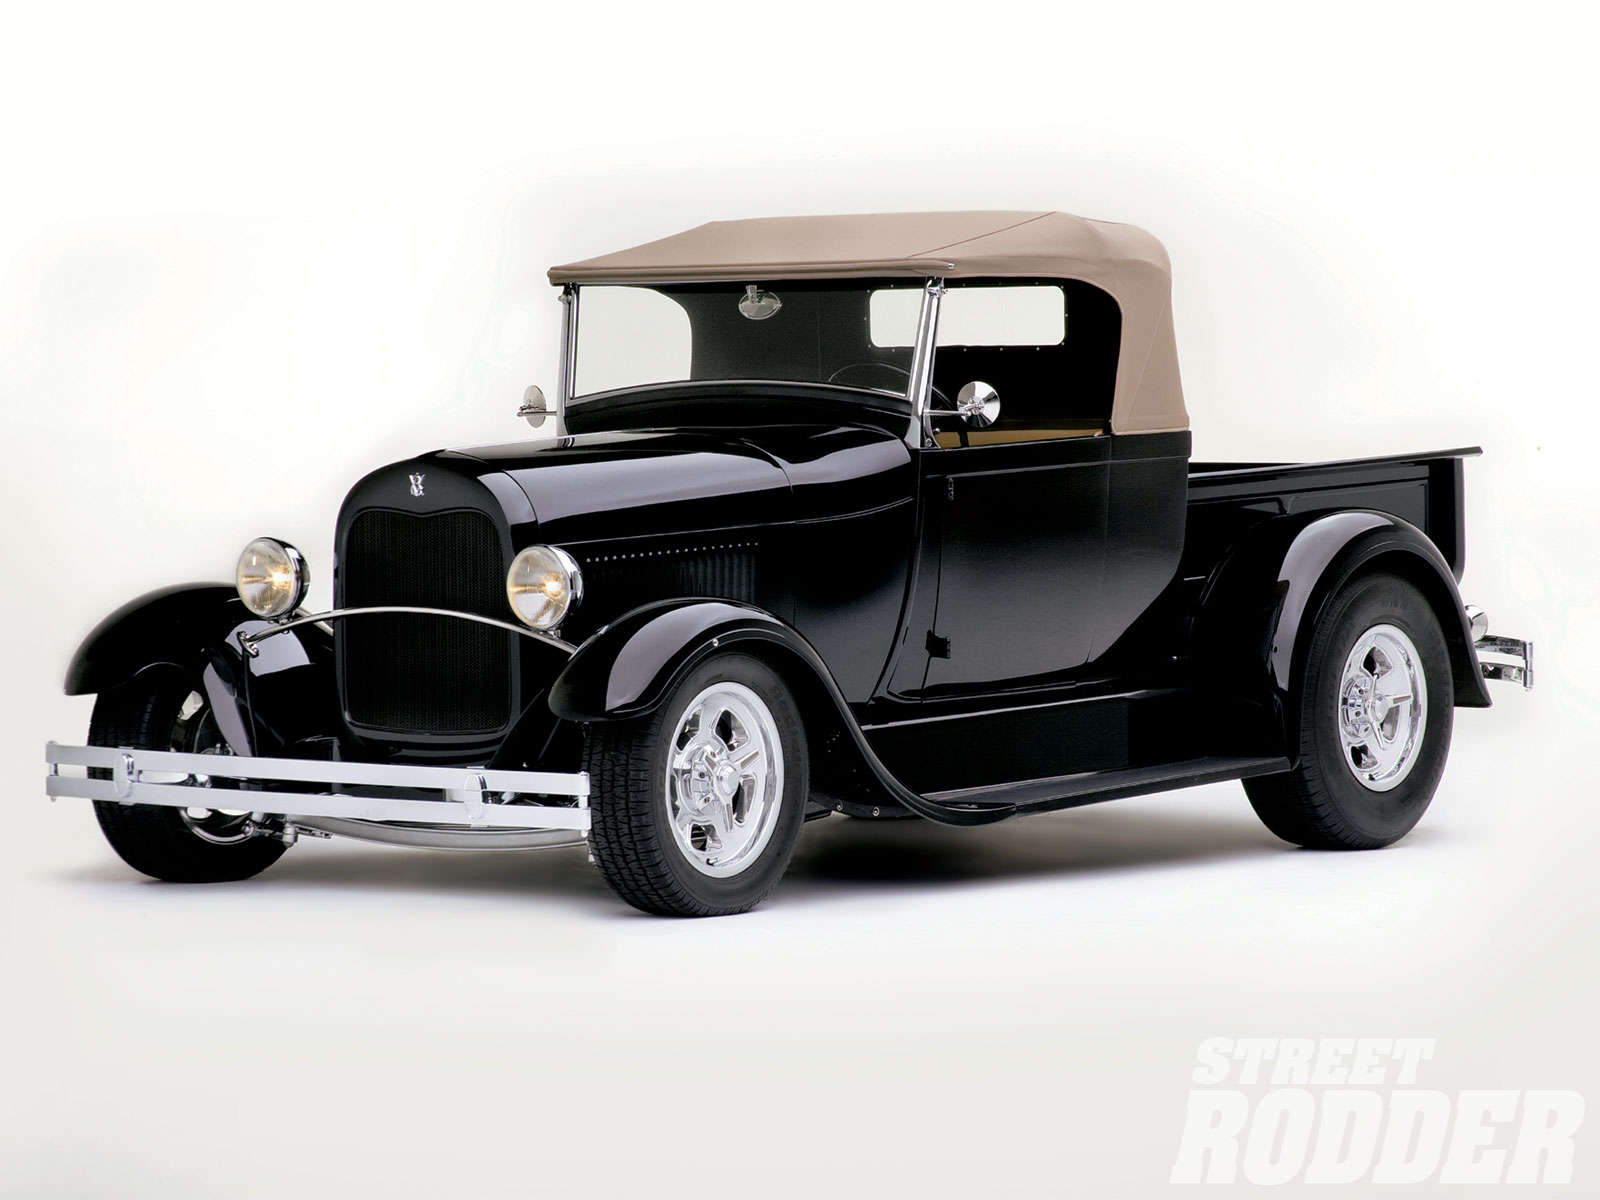 1928 ford trucks hot rod roadster pictures hot rod cars. Black Bedroom Furniture Sets. Home Design Ideas